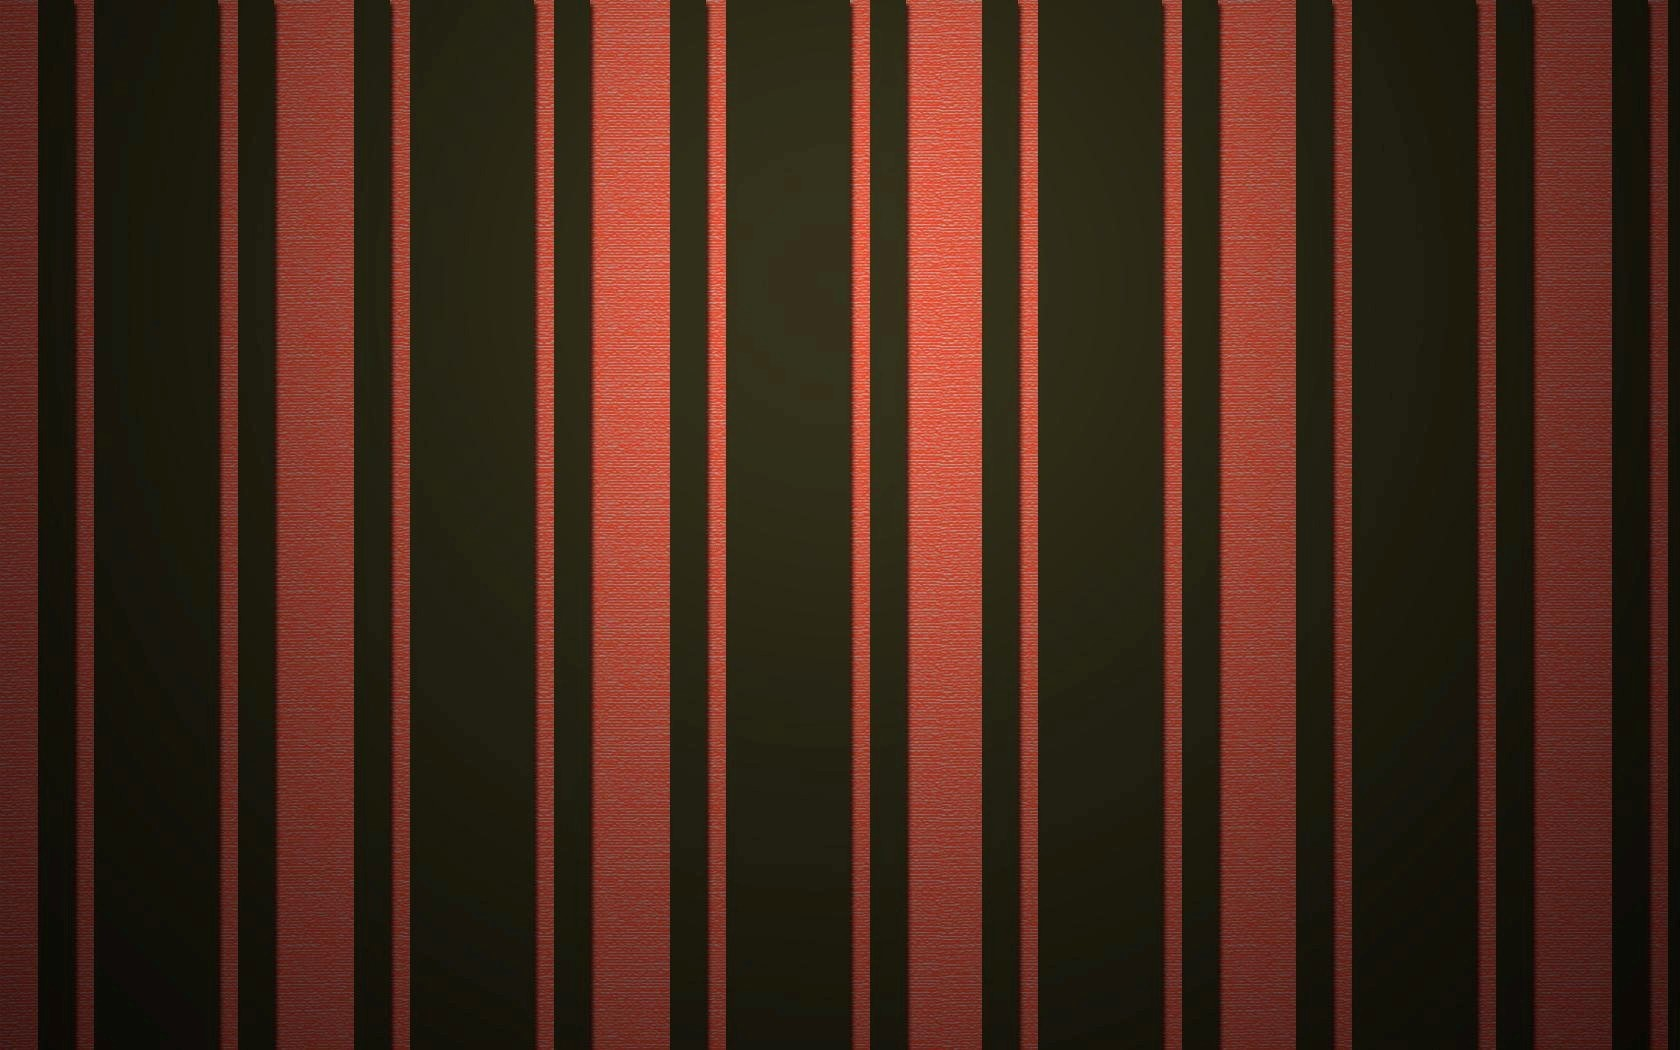 1680x1050 Black and Red Line Abstract Wallpaper Background | HD Wallpapers